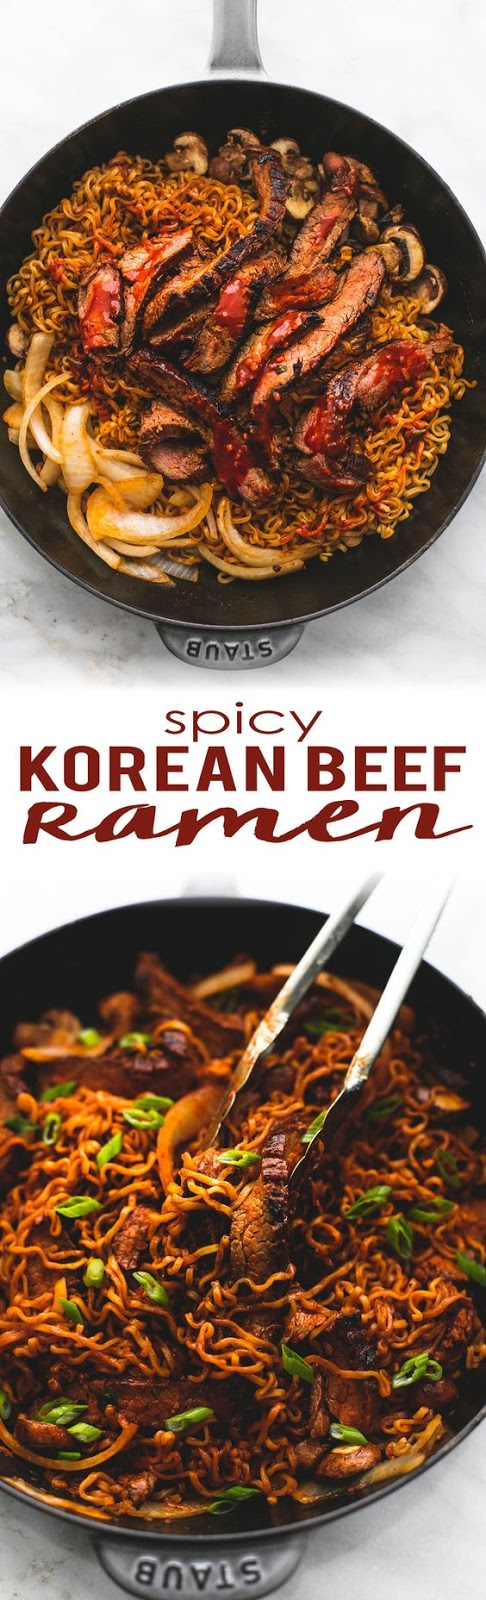 SPICY KOREAN BEEF NOODLES #SPICY #KOREAN #BEEF #NOODLES #DESSERTS #HEALTHYFOOD #EASY_RECIPES #DINNER #LAUCH #DELICIOUS #EASY #HOLIDAYS #RECIPE #SPECIAL_DIET #WORLD_CUISINE #CAKE #GRILL #APPETIZERS #HEALTHY_RECIPES #DRINKS #COOKING_METHOD #ITALIAN_RECIPES #MEAT #VEGAN_RECIPES #COOKIES #PASTA #FRUIT #SALAD #SOUP_APPETIZERS #NON_ALCOHOLIC_DRINKS #MEAL_PLANNING #VEGETABLES #SOUP #PASTRY #CHOCOLATE #DAIRY #ALCOHOLIC_DRINKS #BULGUR_SALAD #BAKING #SNACKS #BEEF_RECIPES #MEAT_APPETIZERS #MEXICAN_RECIPES #BREAD #ASIAN_RECIPES #SEAFOOD_APPETIZERS #MUFFINS #BREAKFAST_AND_BRUNCH #CONDIMENTS #CUPCAKES #CHEESE #CHICKEN_RECIPES #PIE #COFFEE #NO_BAKE_DESSERTS #HEALTHY_SNACKS #SEAFOOD #GRAIN #LUNCHES_DINNERS #MEXICAN #QUICK_BREAD #LIQUOR